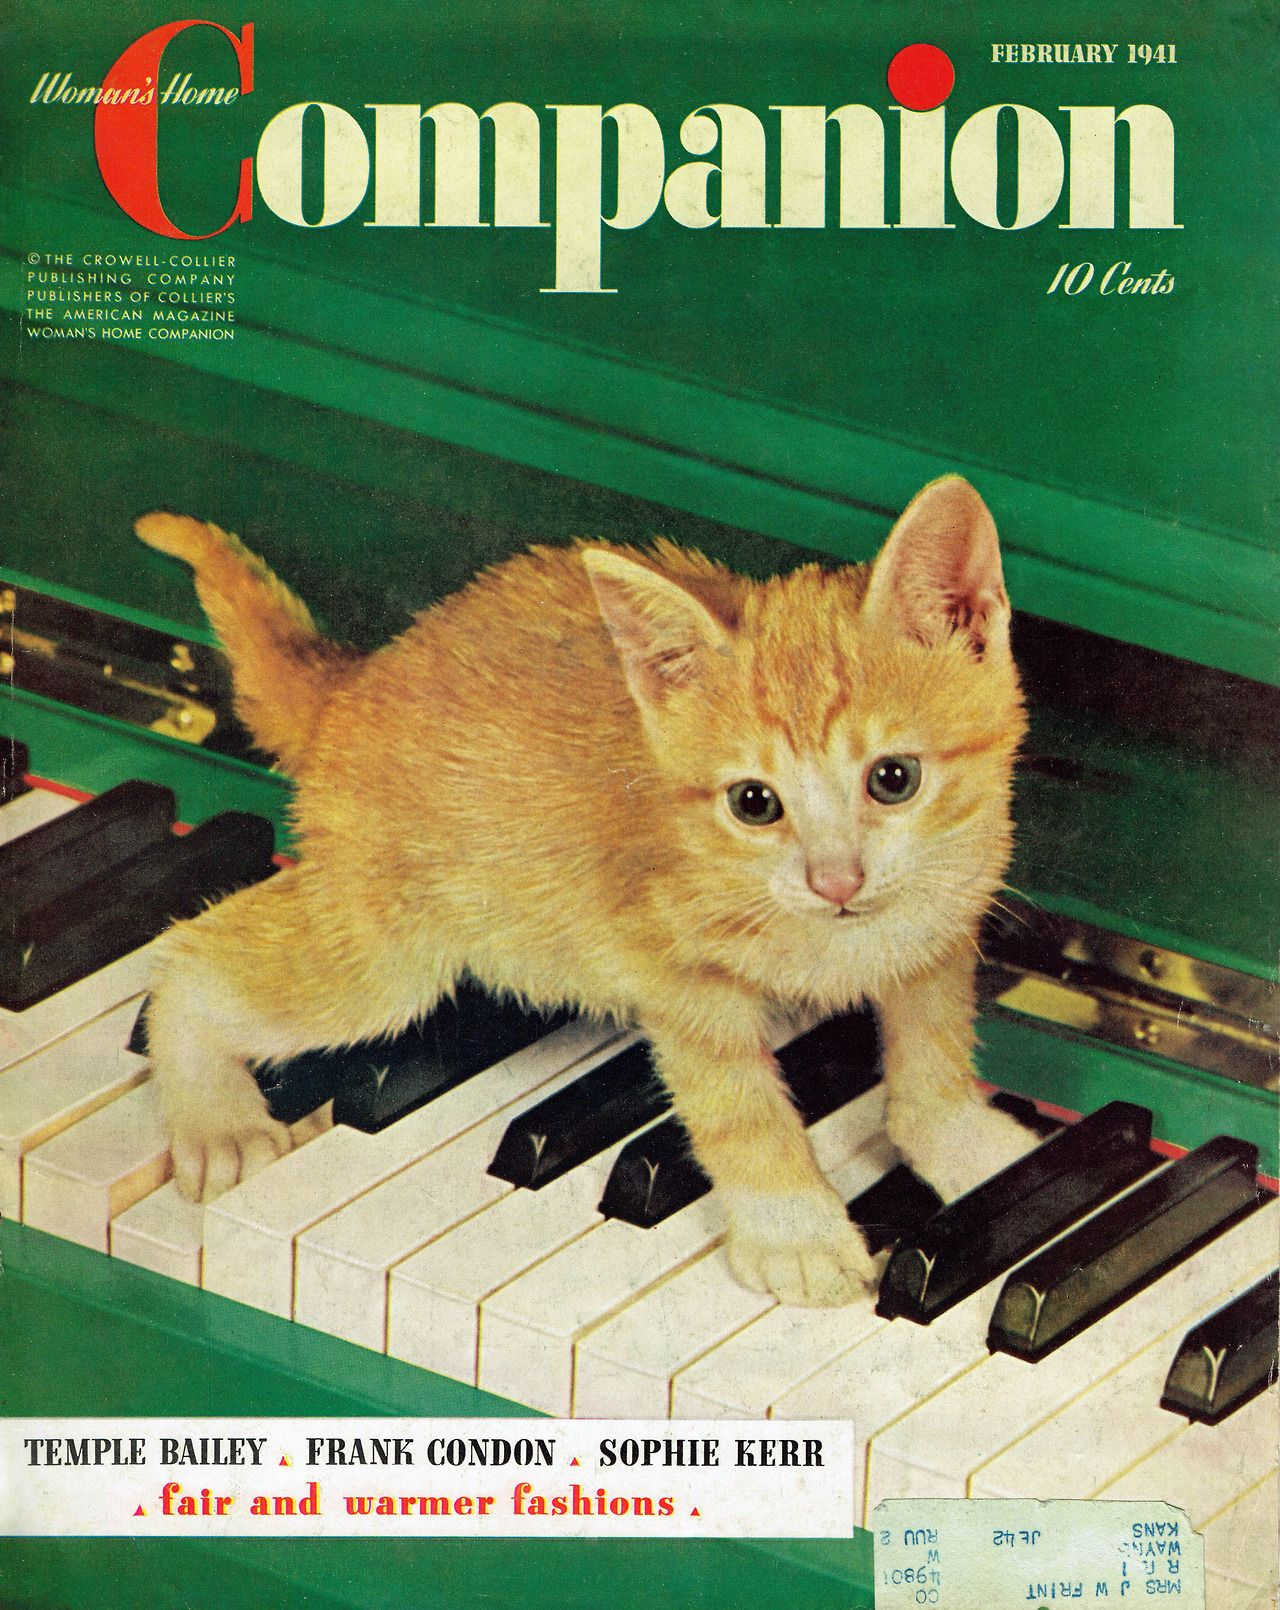 Remarkably Retro Photo Old Magazines Old Commercials Vintage Cat